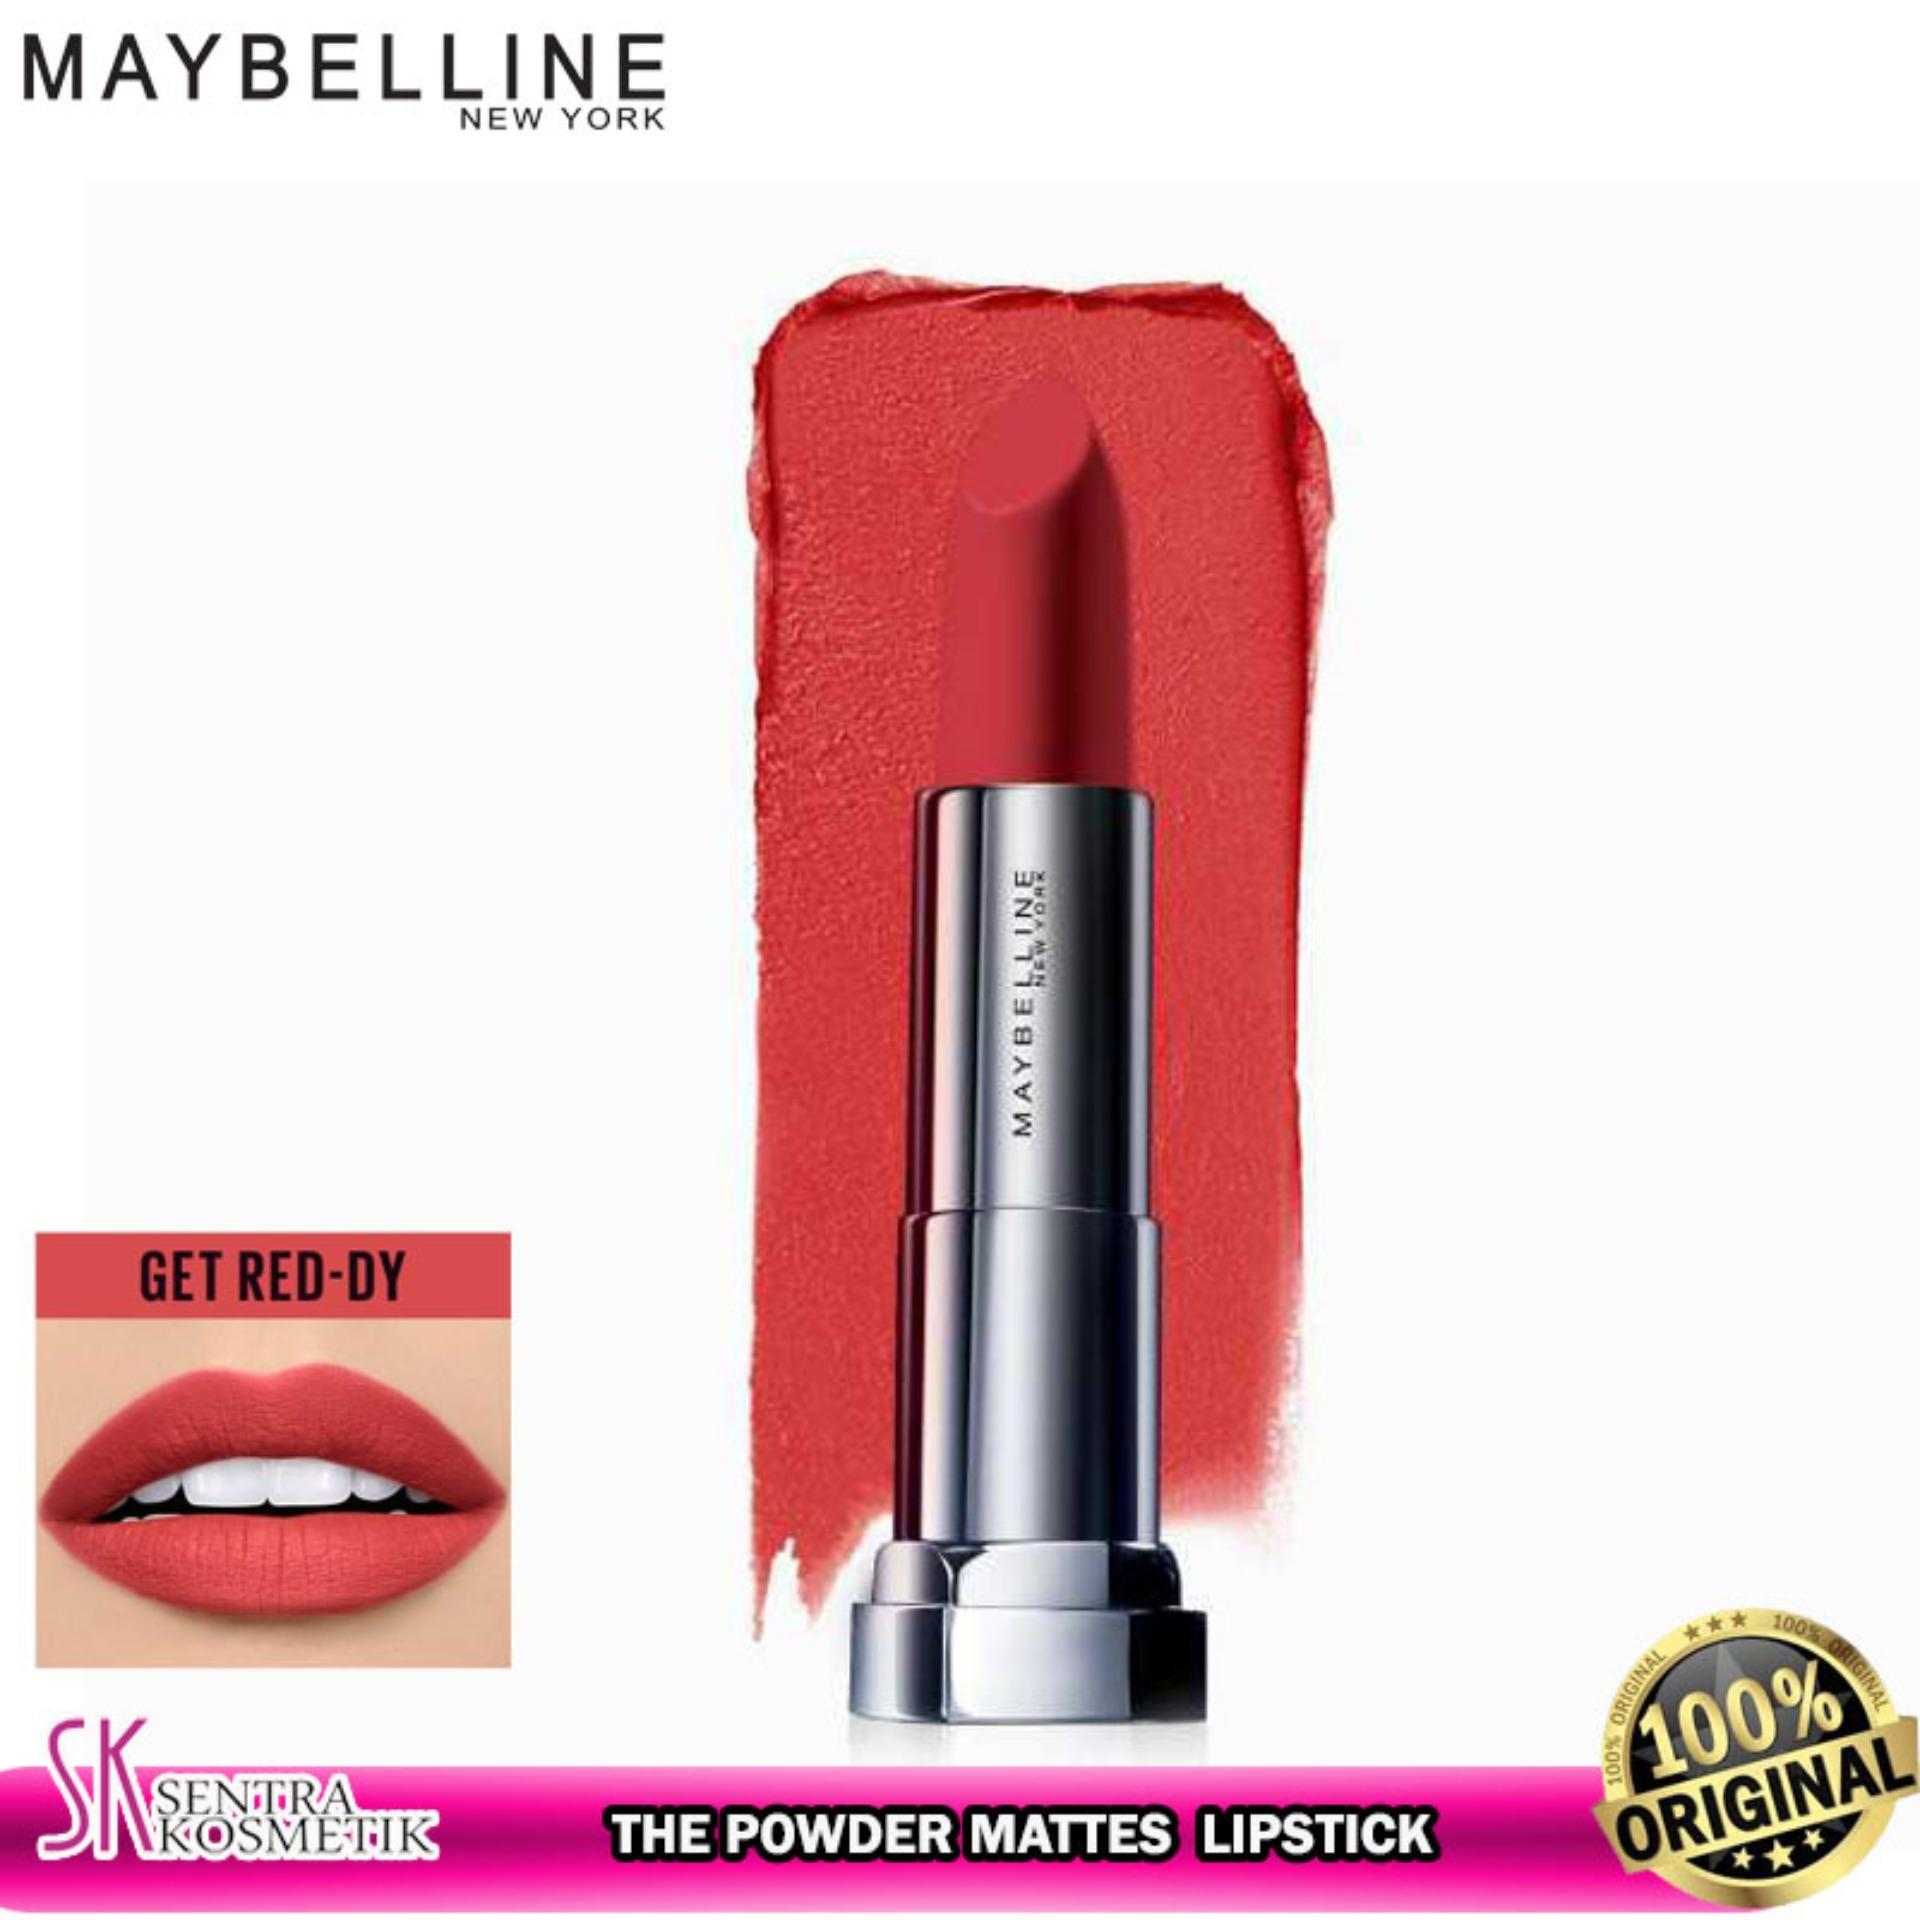 MAYBELLINE Color Sensational The Powder Mattes Lipstick GET RED DY